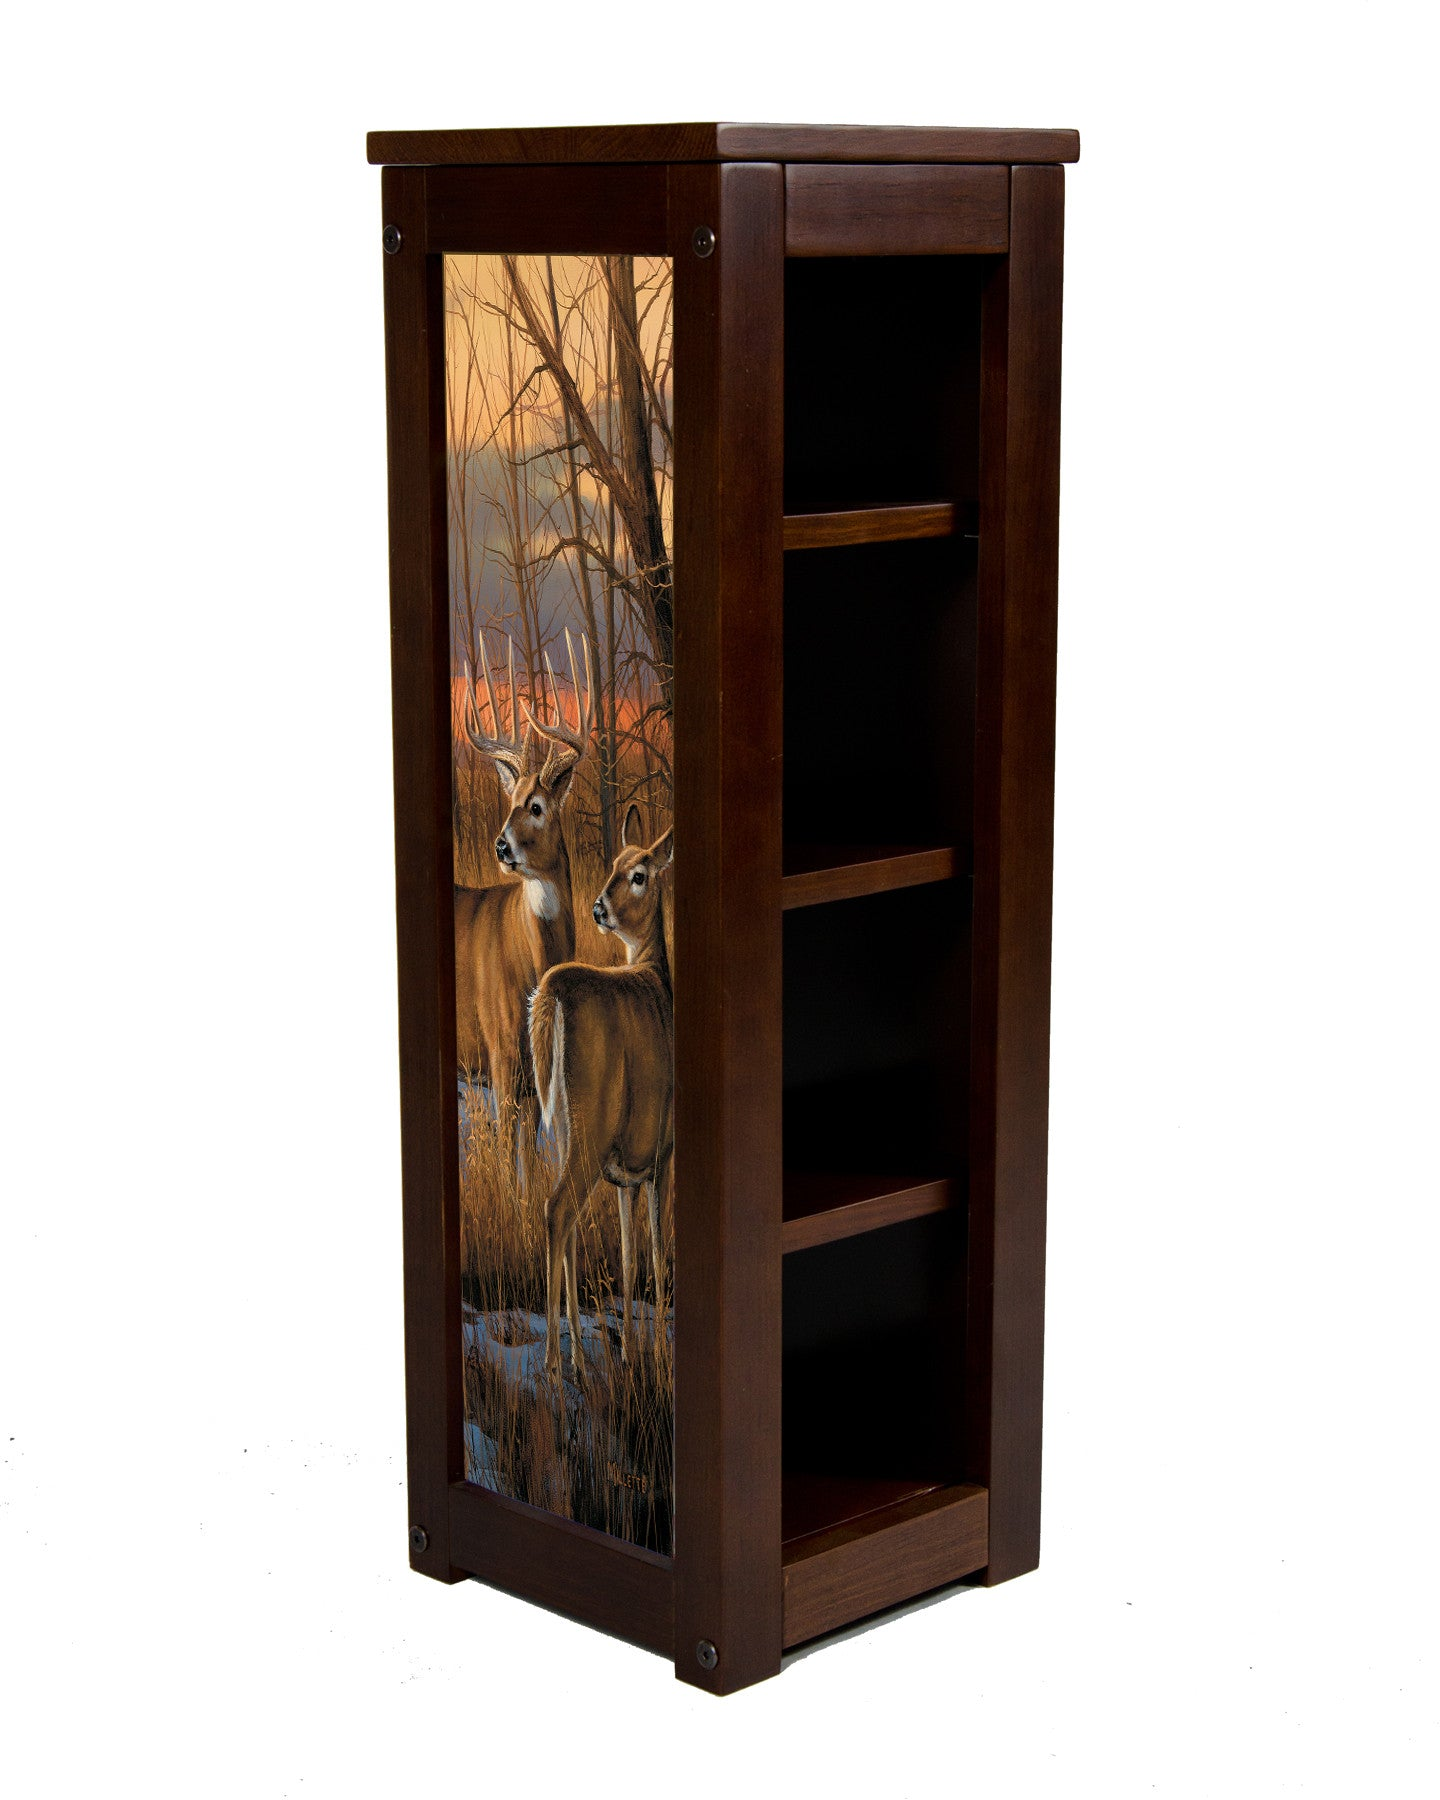 Pedestal Stand-Daybreak Whitetails-Rosemary Millette